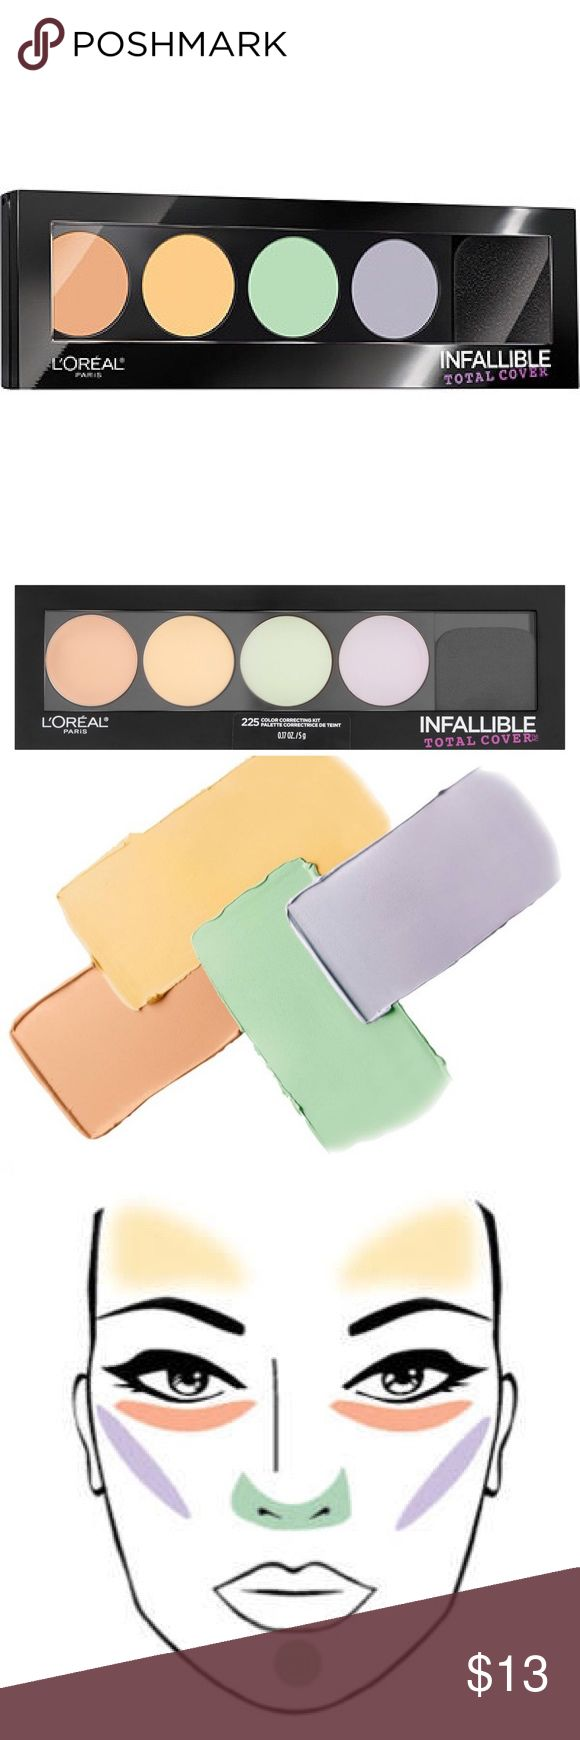 NEW L'ORÉAL Infallible Total Cover Color Kit  BRAND NEW, never opened. Perfect condition. From my smoke free home. Original Retail: $17  ABOUT ---: A pro-inspired cream palette that color corrects and neutralizes skin tone imperfections. The Infallible Total Cover Color Correcting Kit balances, corrects, and perfects your skin as you wipe out any discolorations with these powerful cream complexion correctors. Includes a coordinating visual guide to make the professional technique of…